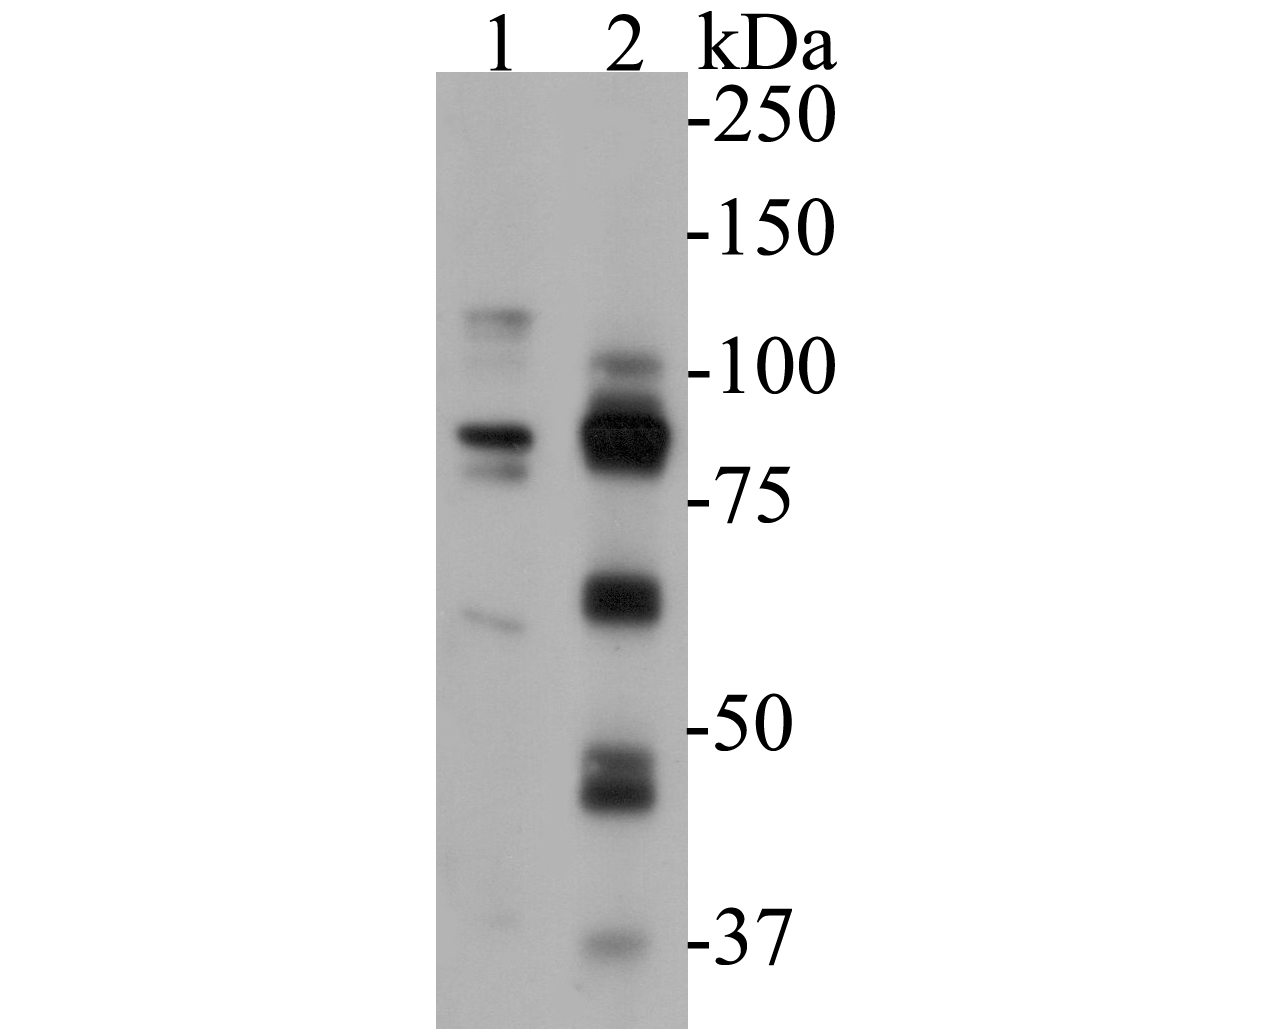 Western blot analysis of FoxP1 on different lysates. Proteins were transferred to a PVDF membrane and blocked with 5% BSA in PBS for 1 hour at room temperature. The primary antibody (ER1901-26, 1/500) was used in 5% BSA at room temperature for 2 hours. Goat Anti-Rabbit IgG - HRP Secondary Antibody (HA1001) at 1:5,000 dilution was used for 1 hour at room temperature.<br /> Positive control: <br /> Lane 1: HepG2 cell lysate<br /> Lane 2: rat spleen tissue lysate